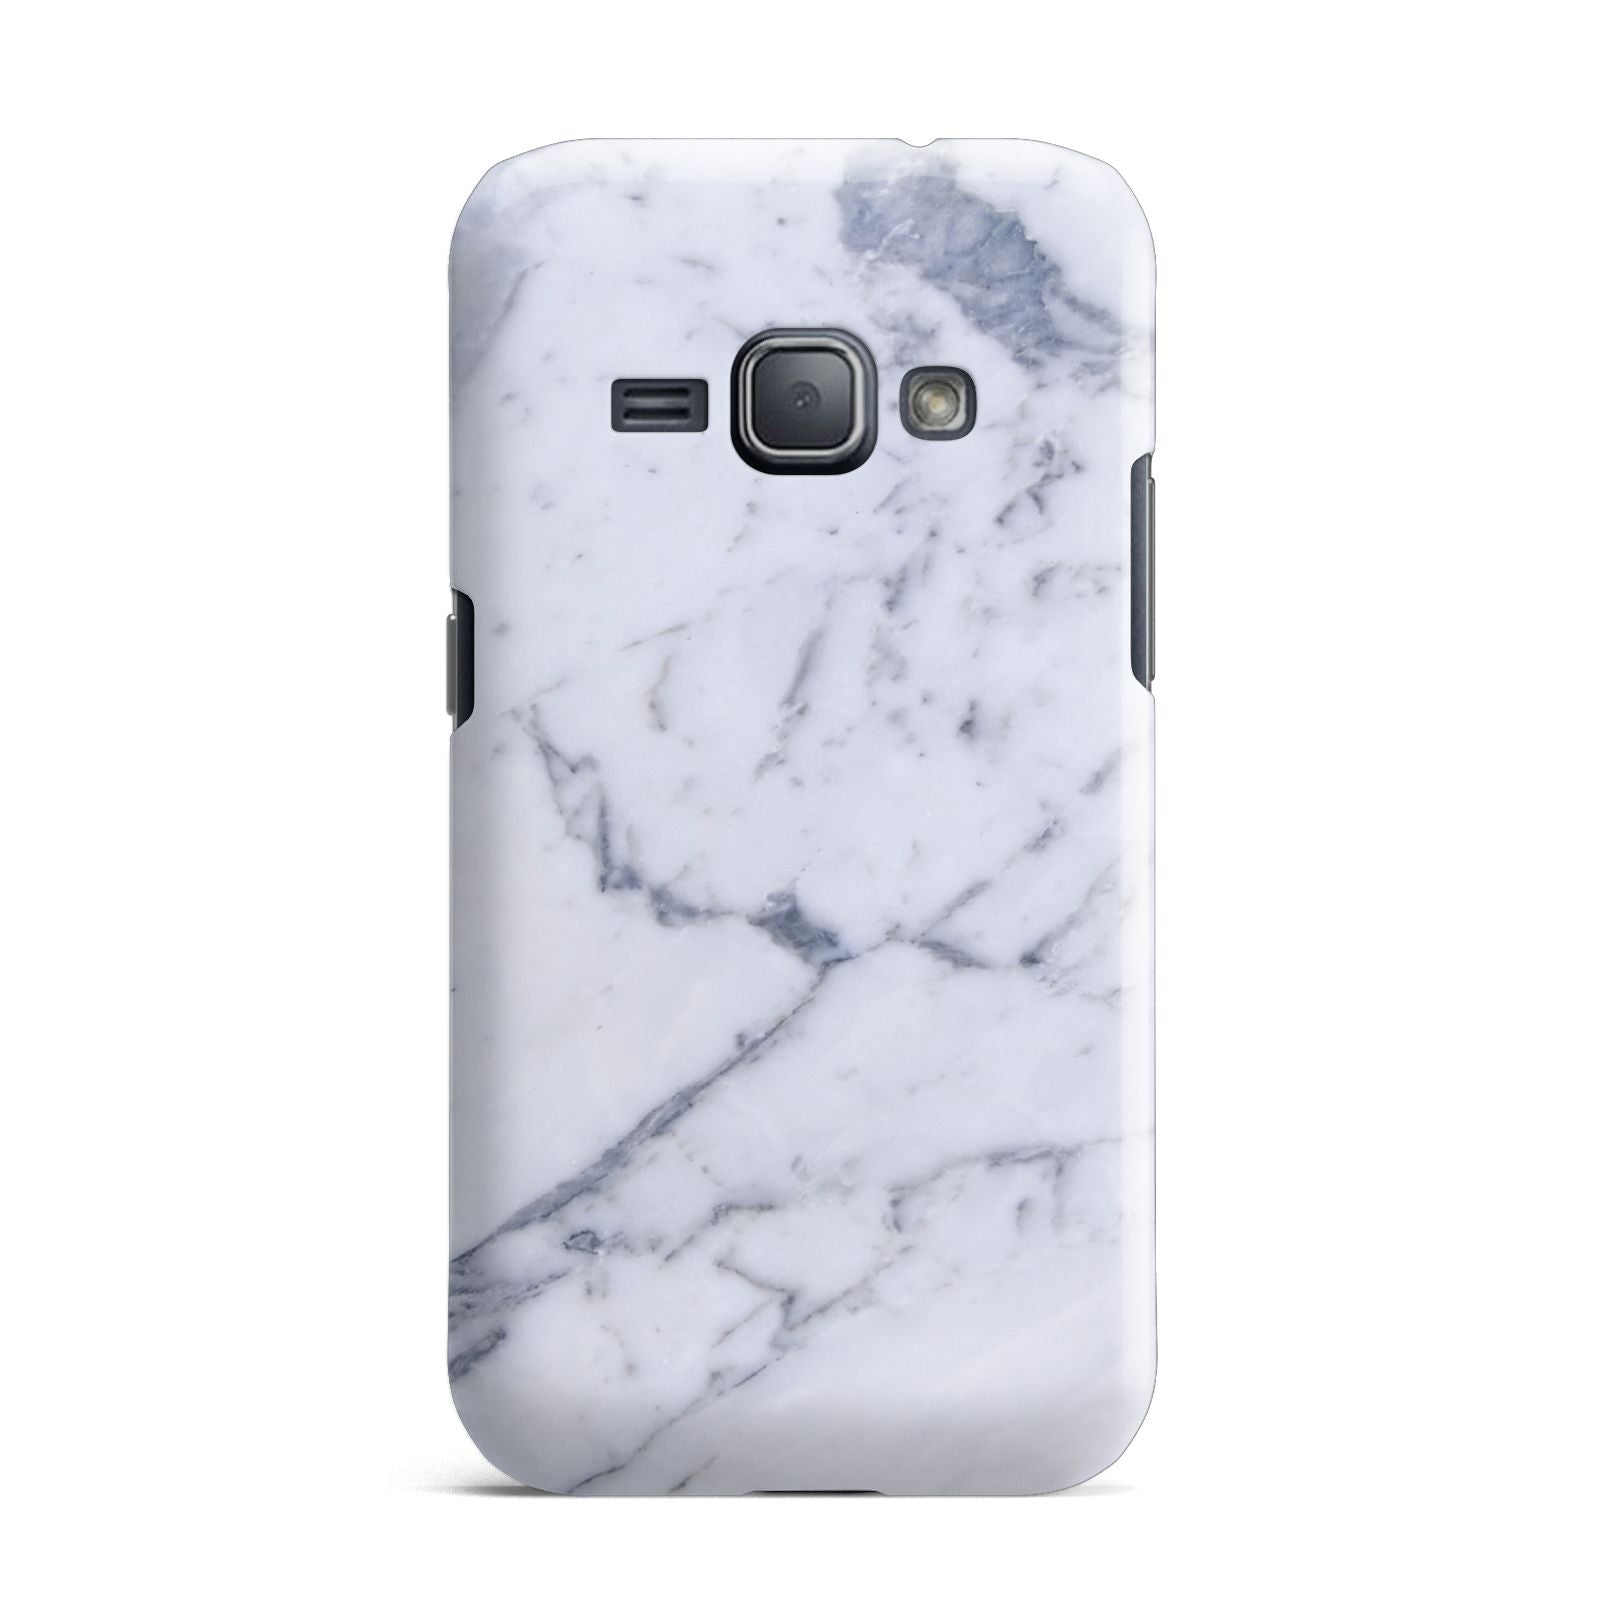 Faux Marble Grey White Samsung Galaxy J1 2016 Case